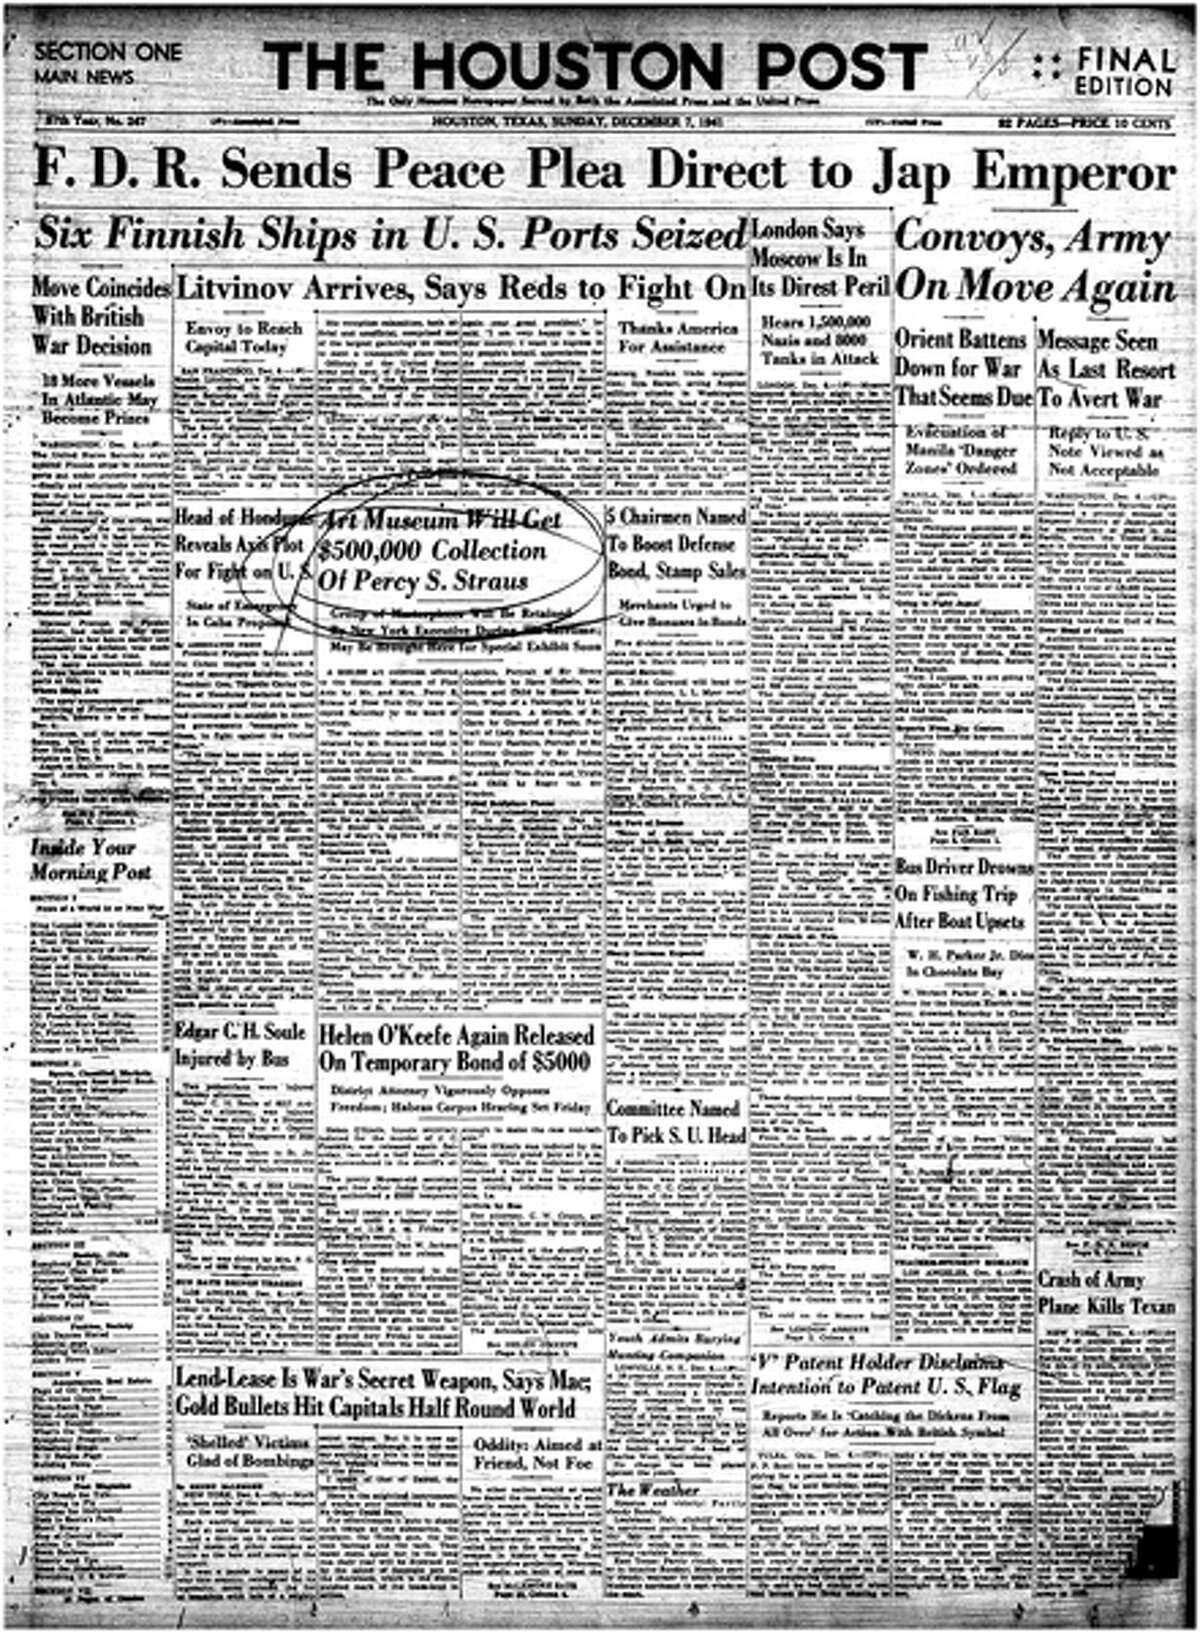 Houston Post front page - December 7, 1941 - Section A, page 1.